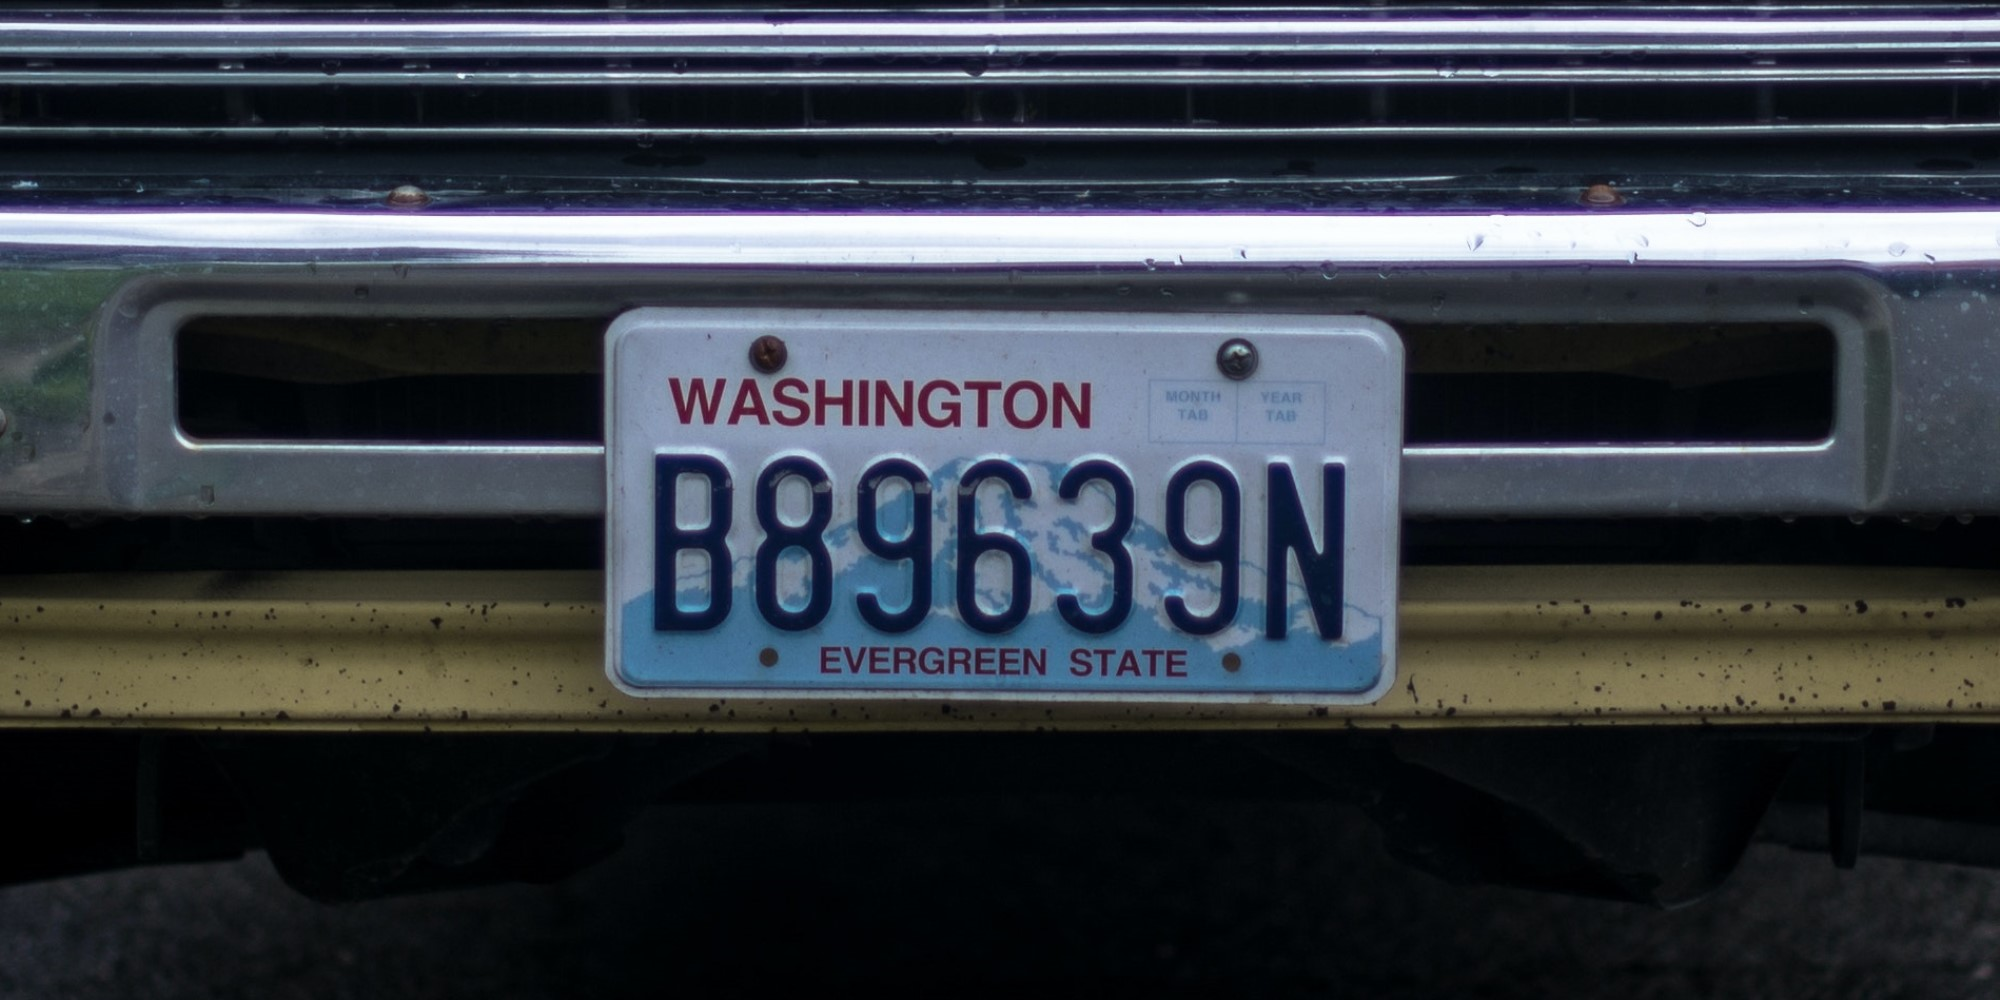 Where are all the US license plates coming from?